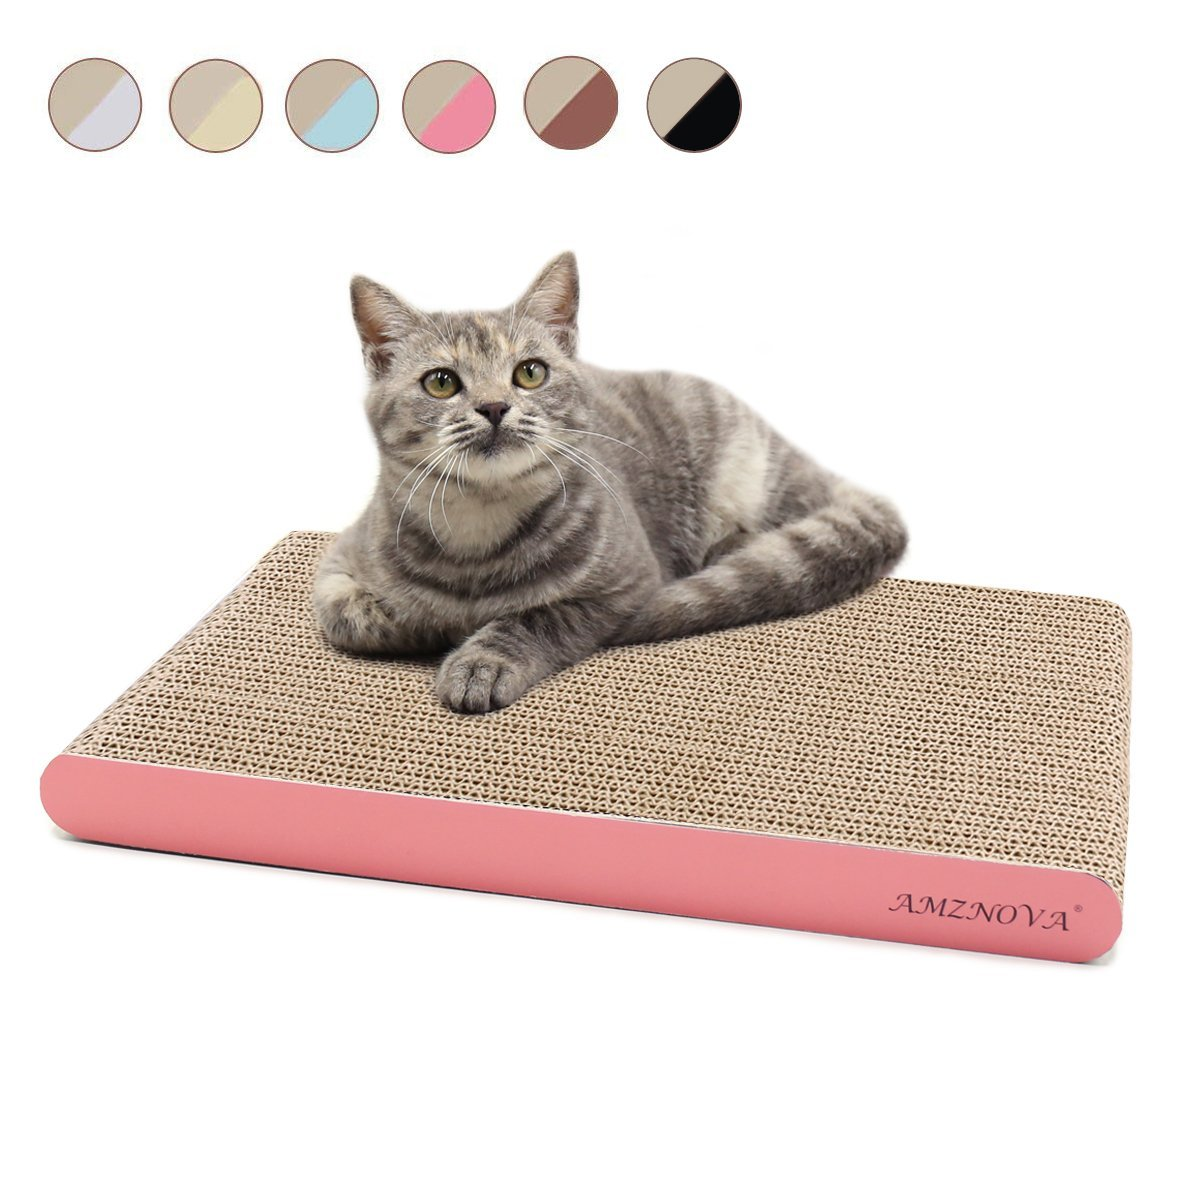 AMZNOVA Durable Cat Scratcher Lounge, Eco-Friendly Cardboard, Colors Series, Wide, Pink